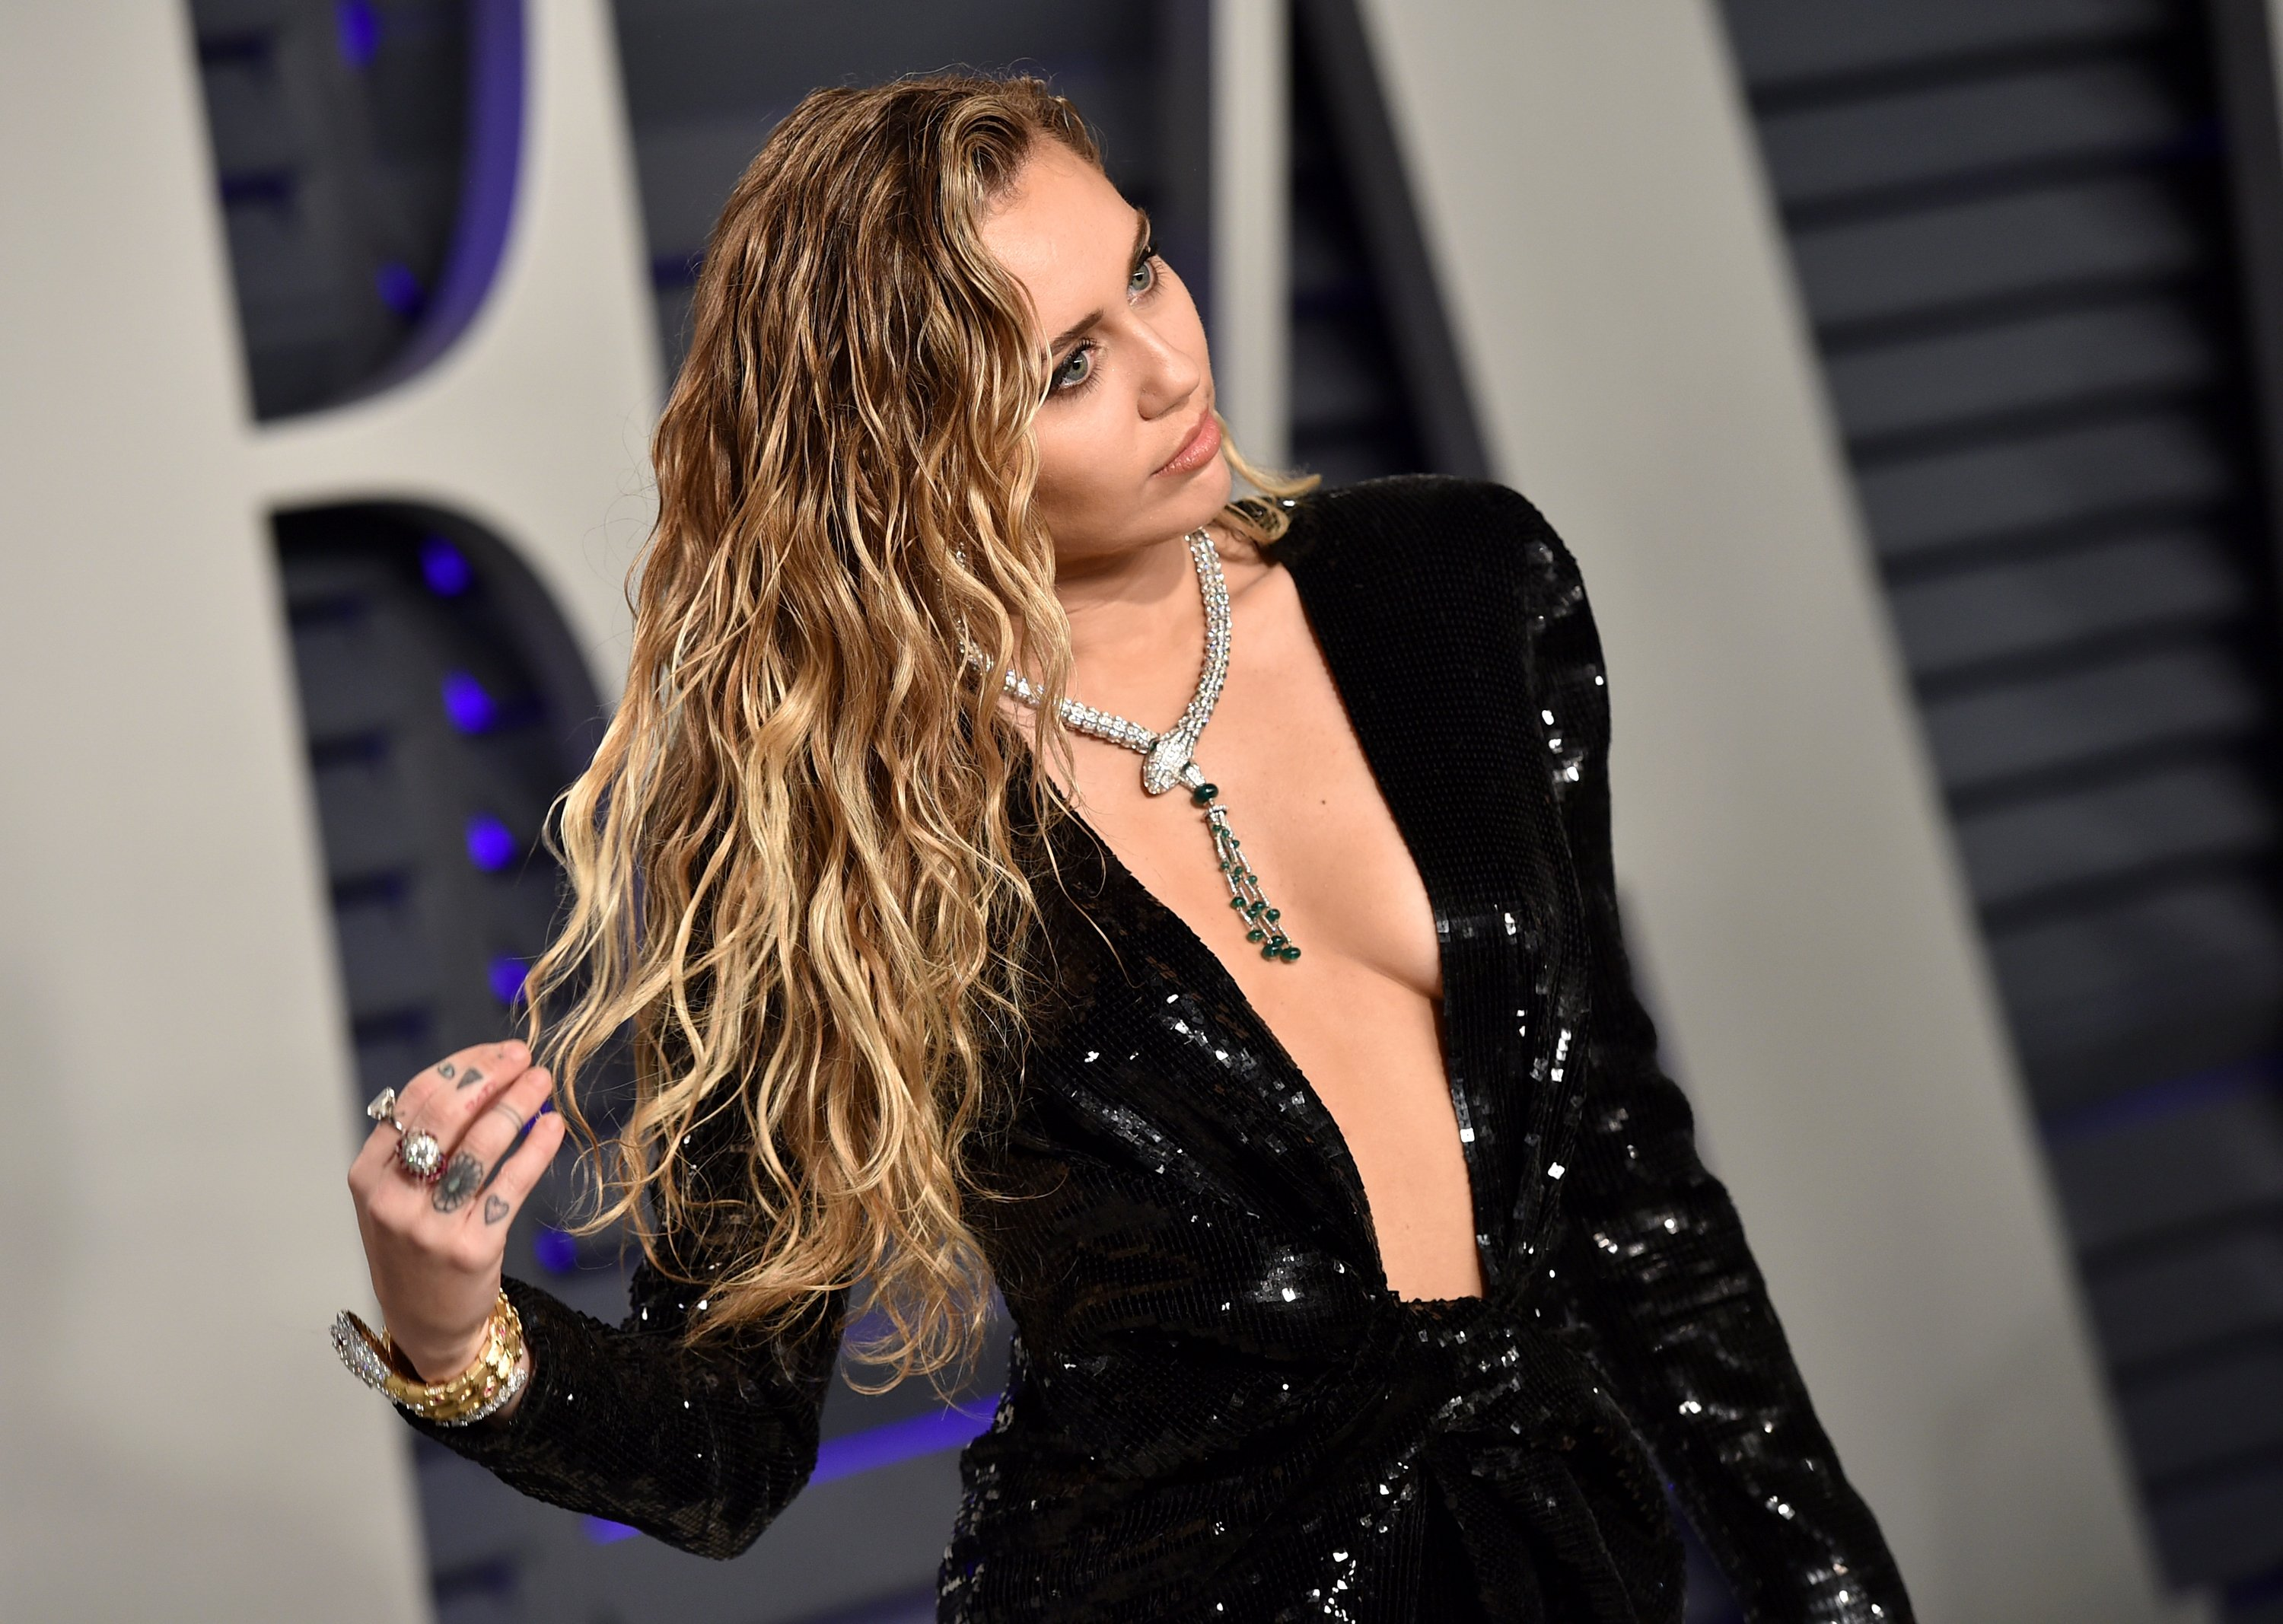 """Former Disney star Miley Cyrus, who recently released her new song """"Midnight Sky,"""" had ended her 10-month relationship with Australian singer Cody Simpson. 